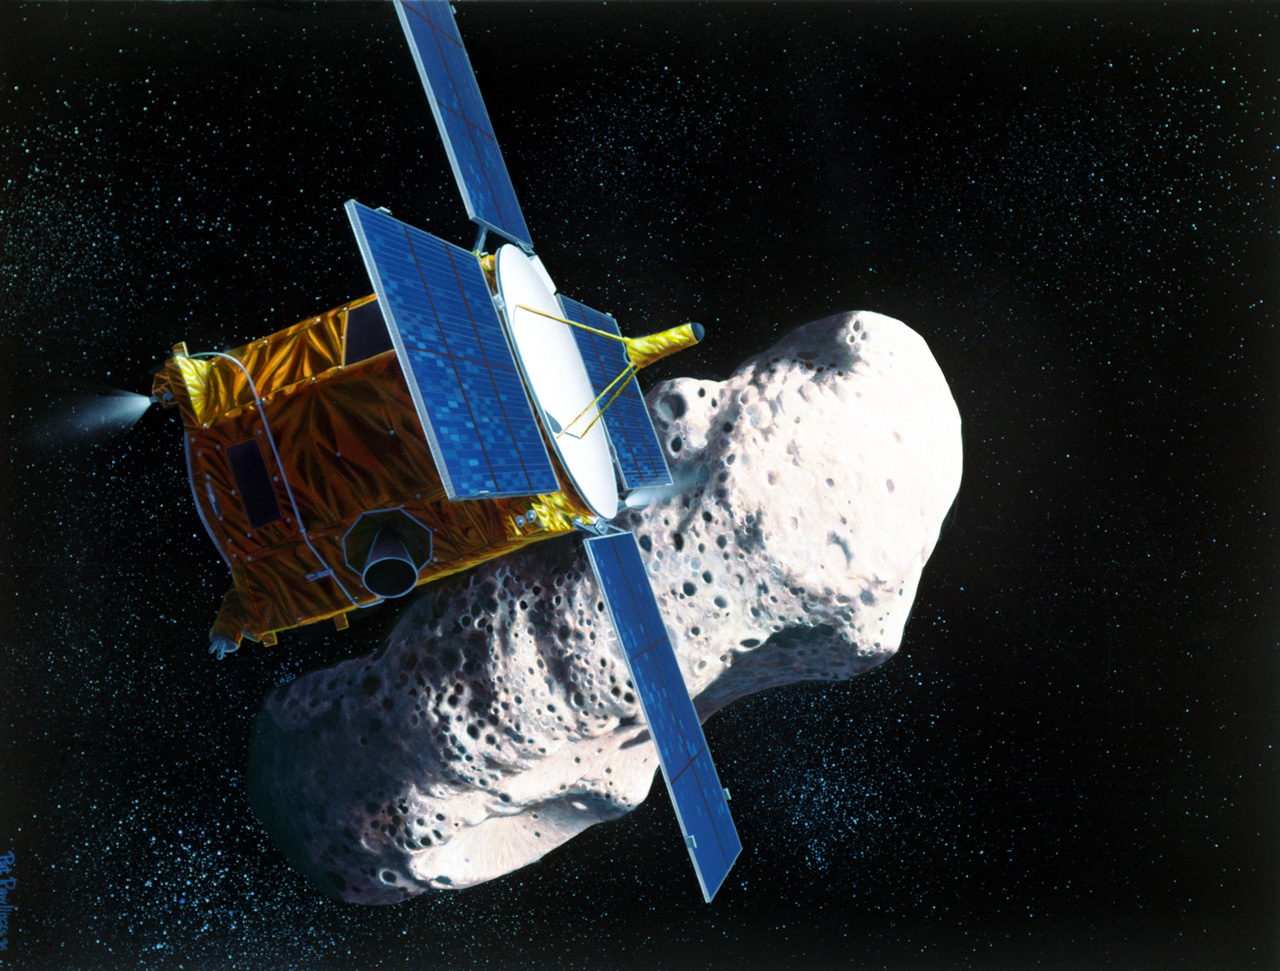 Spacecraft with asteroid in background.